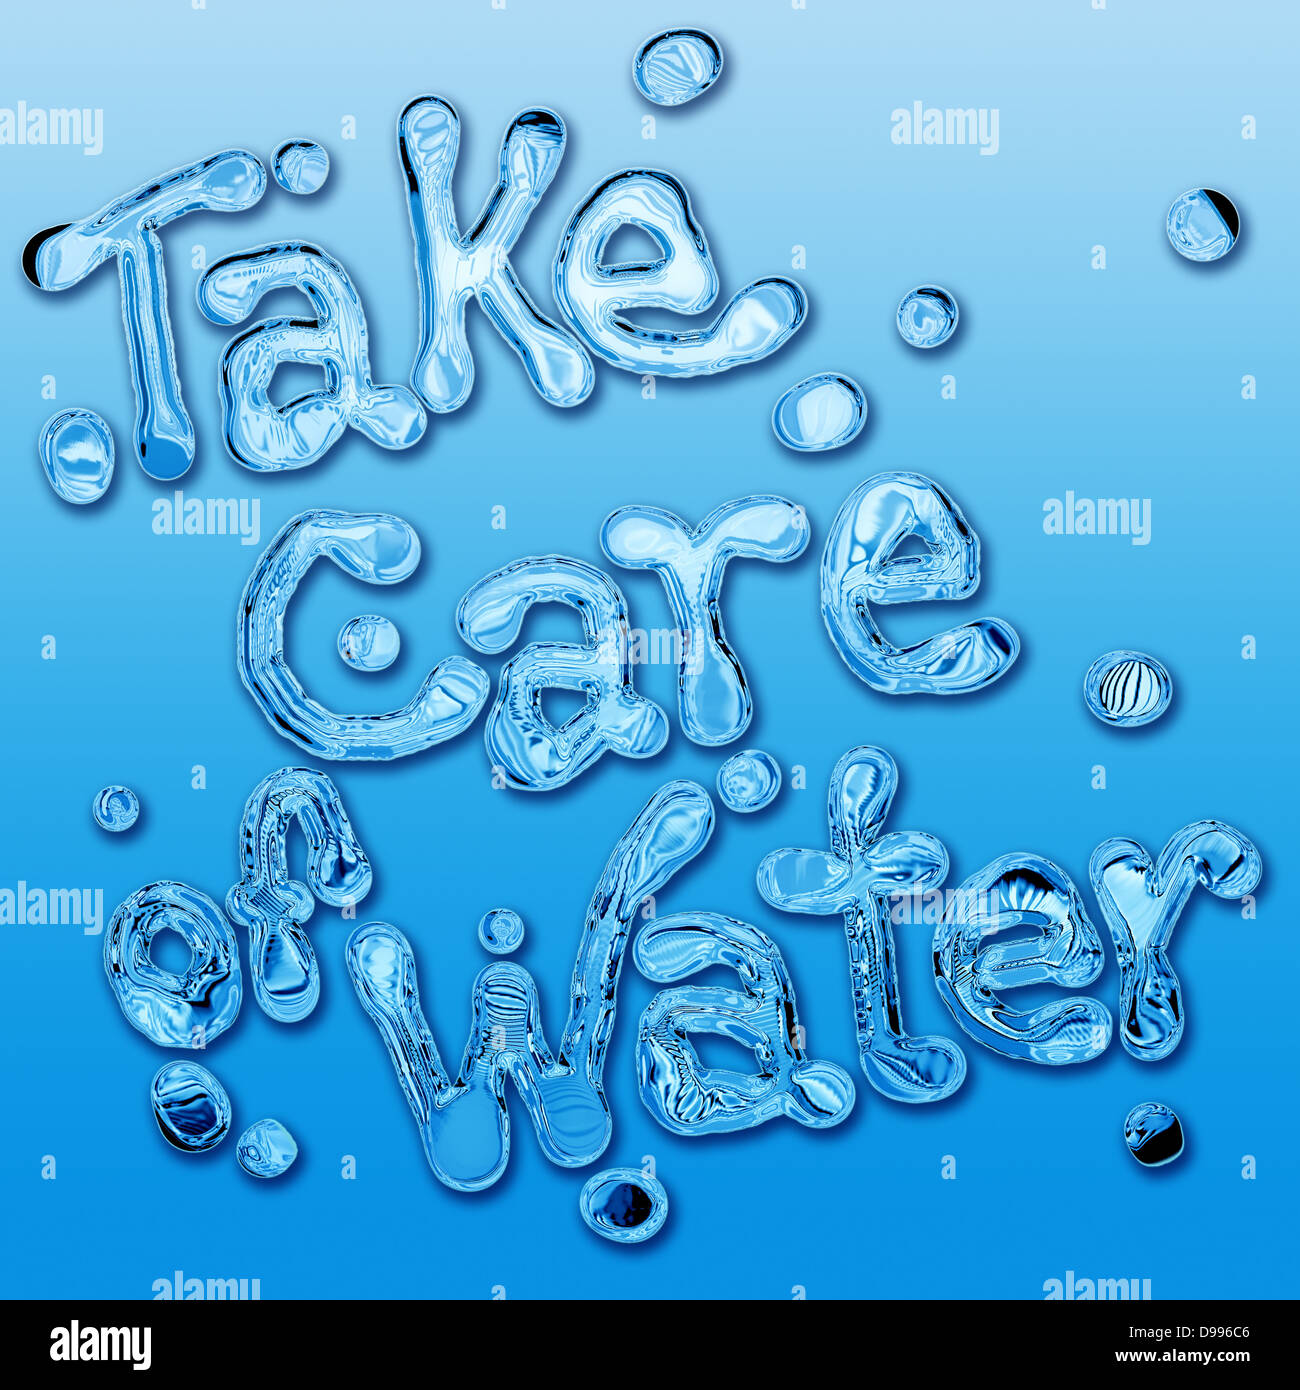 Take care of the water to save the planet. Concept and slogan environmentalist. - Stock Image